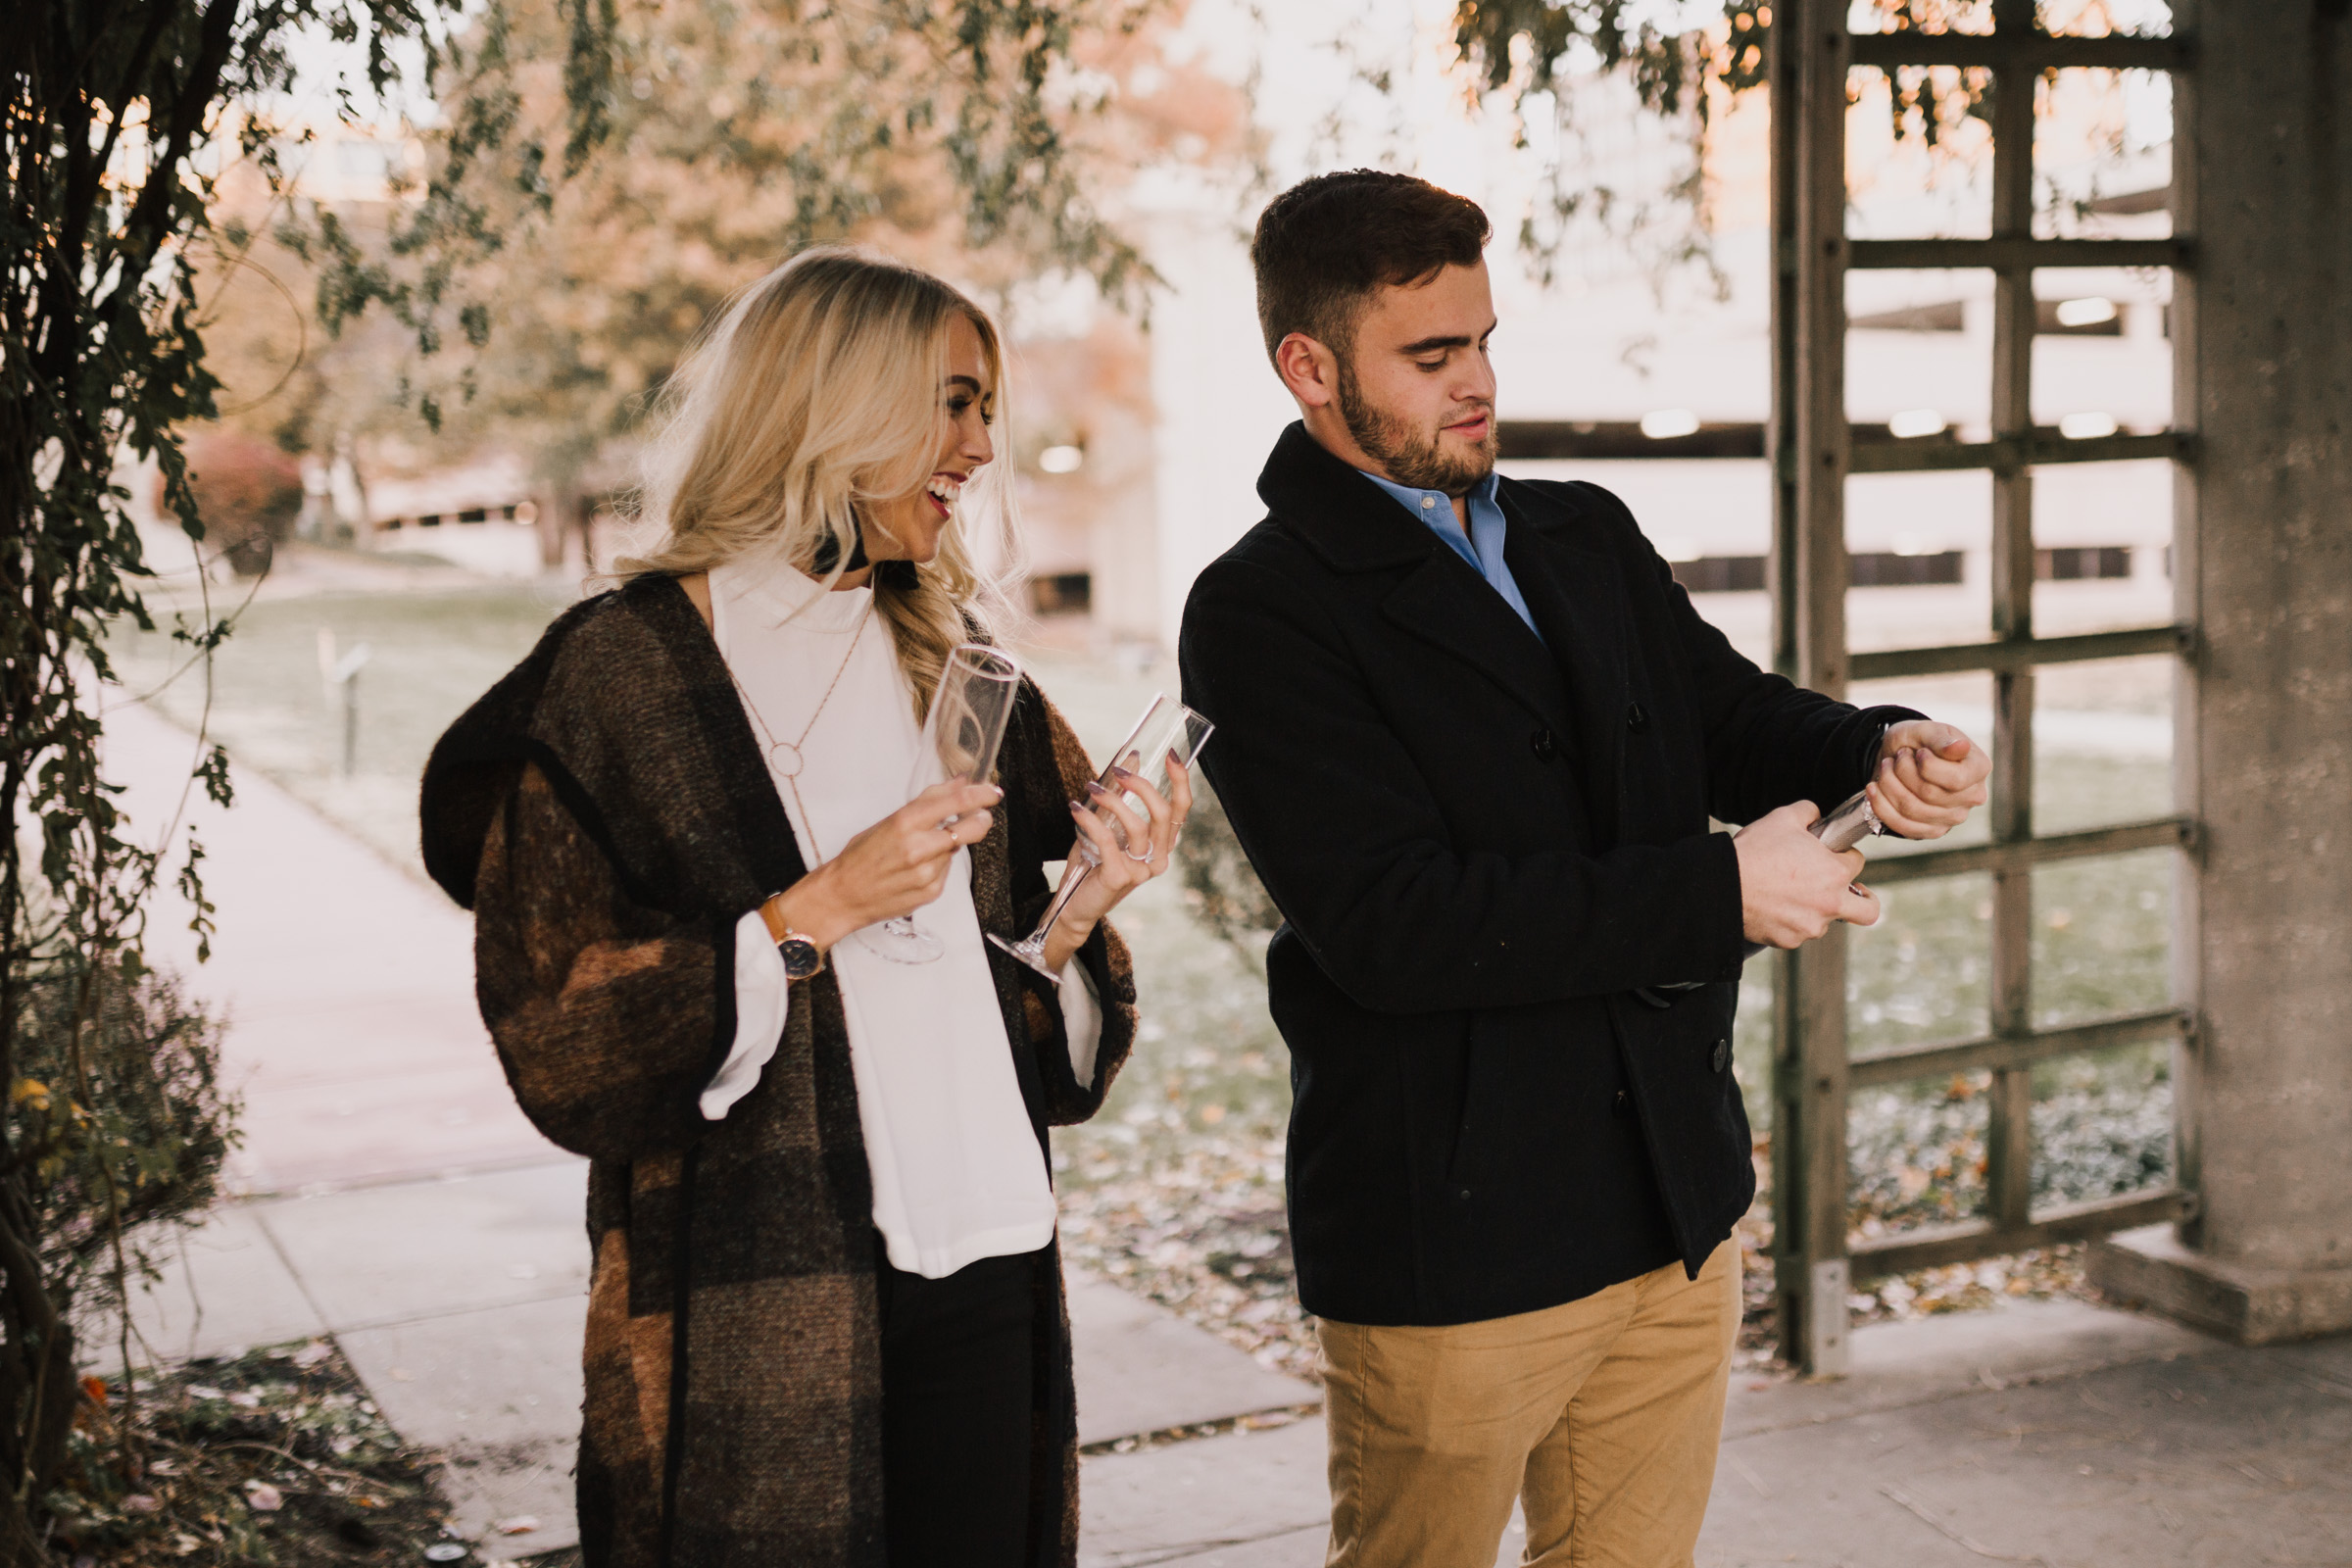 alyssa barletter photography proposal country club plaza park fall engagement how he asked she said yes-6.jpg